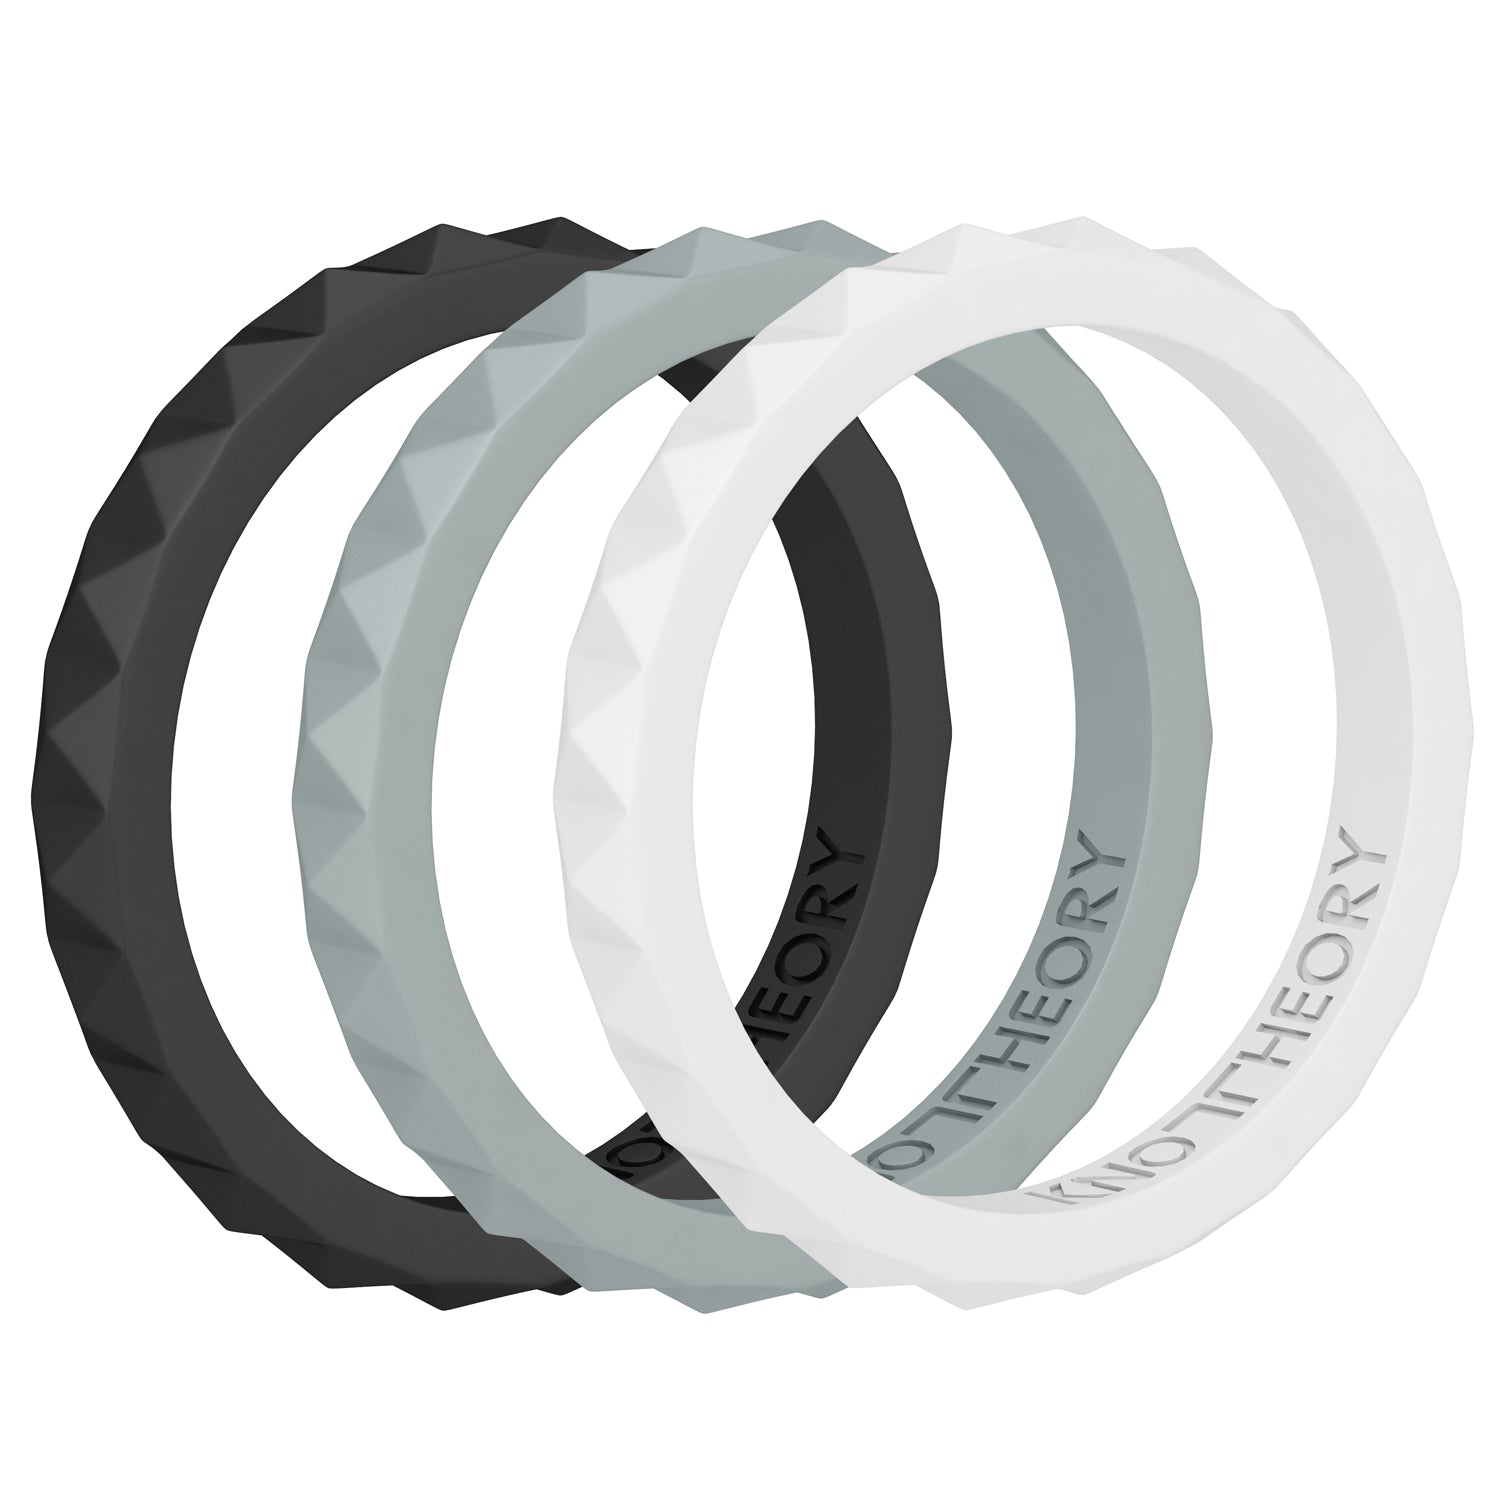 Harmony Stackable Silicone Wedding Rings for Women - 3-Pack in Black, White, Grey